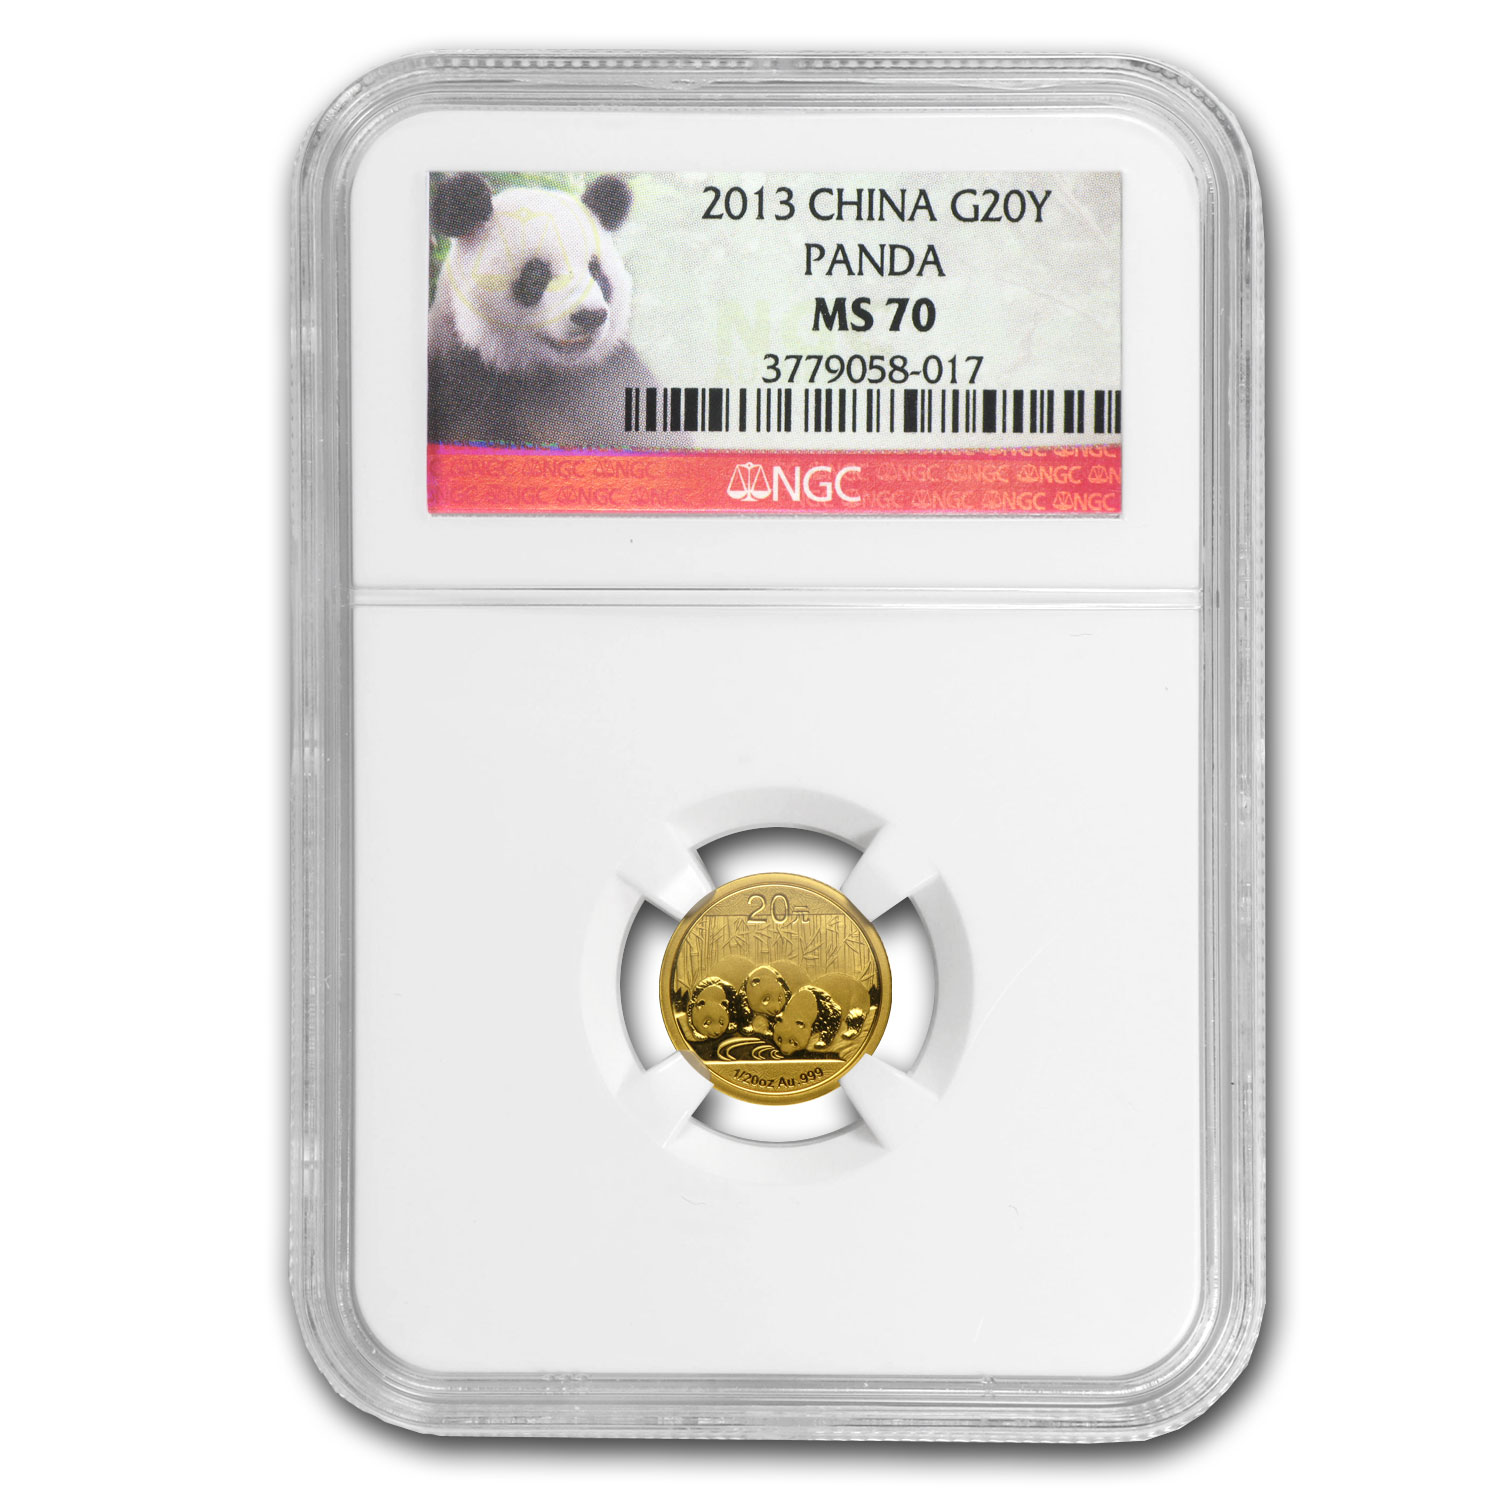 2013 China 1/20 oz Gold Panda MS-70 NGC